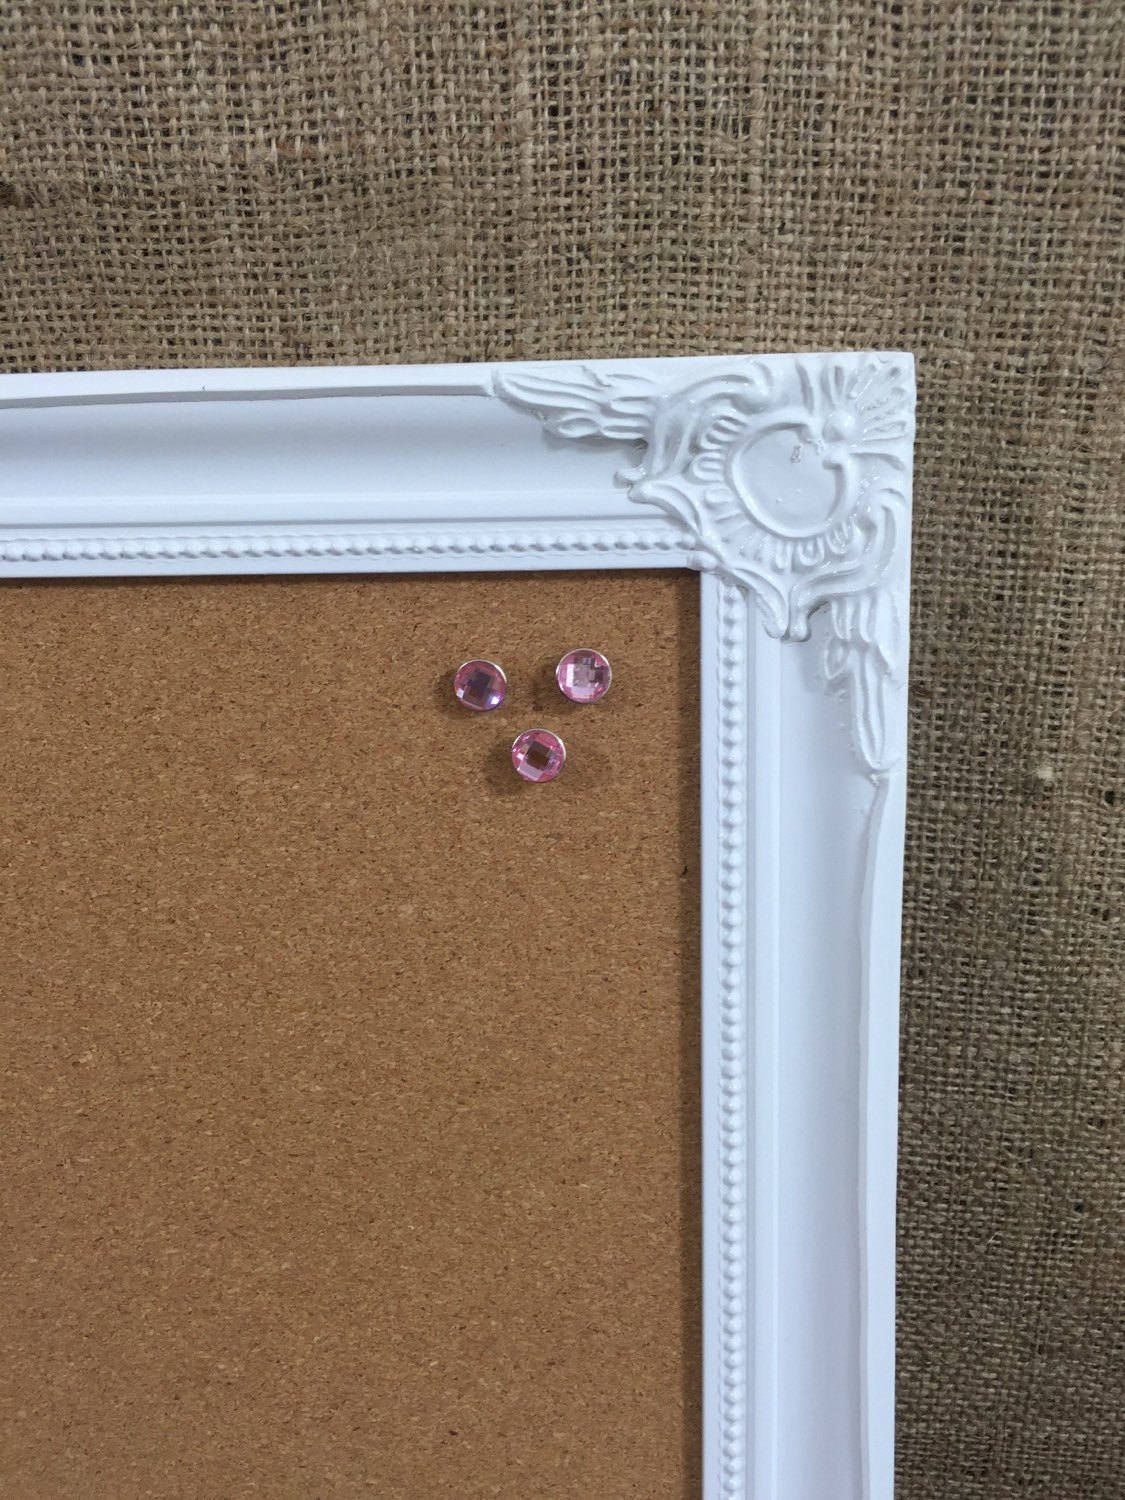 Framed Pin Board  White Framed Corkboard  White Ornate Framed